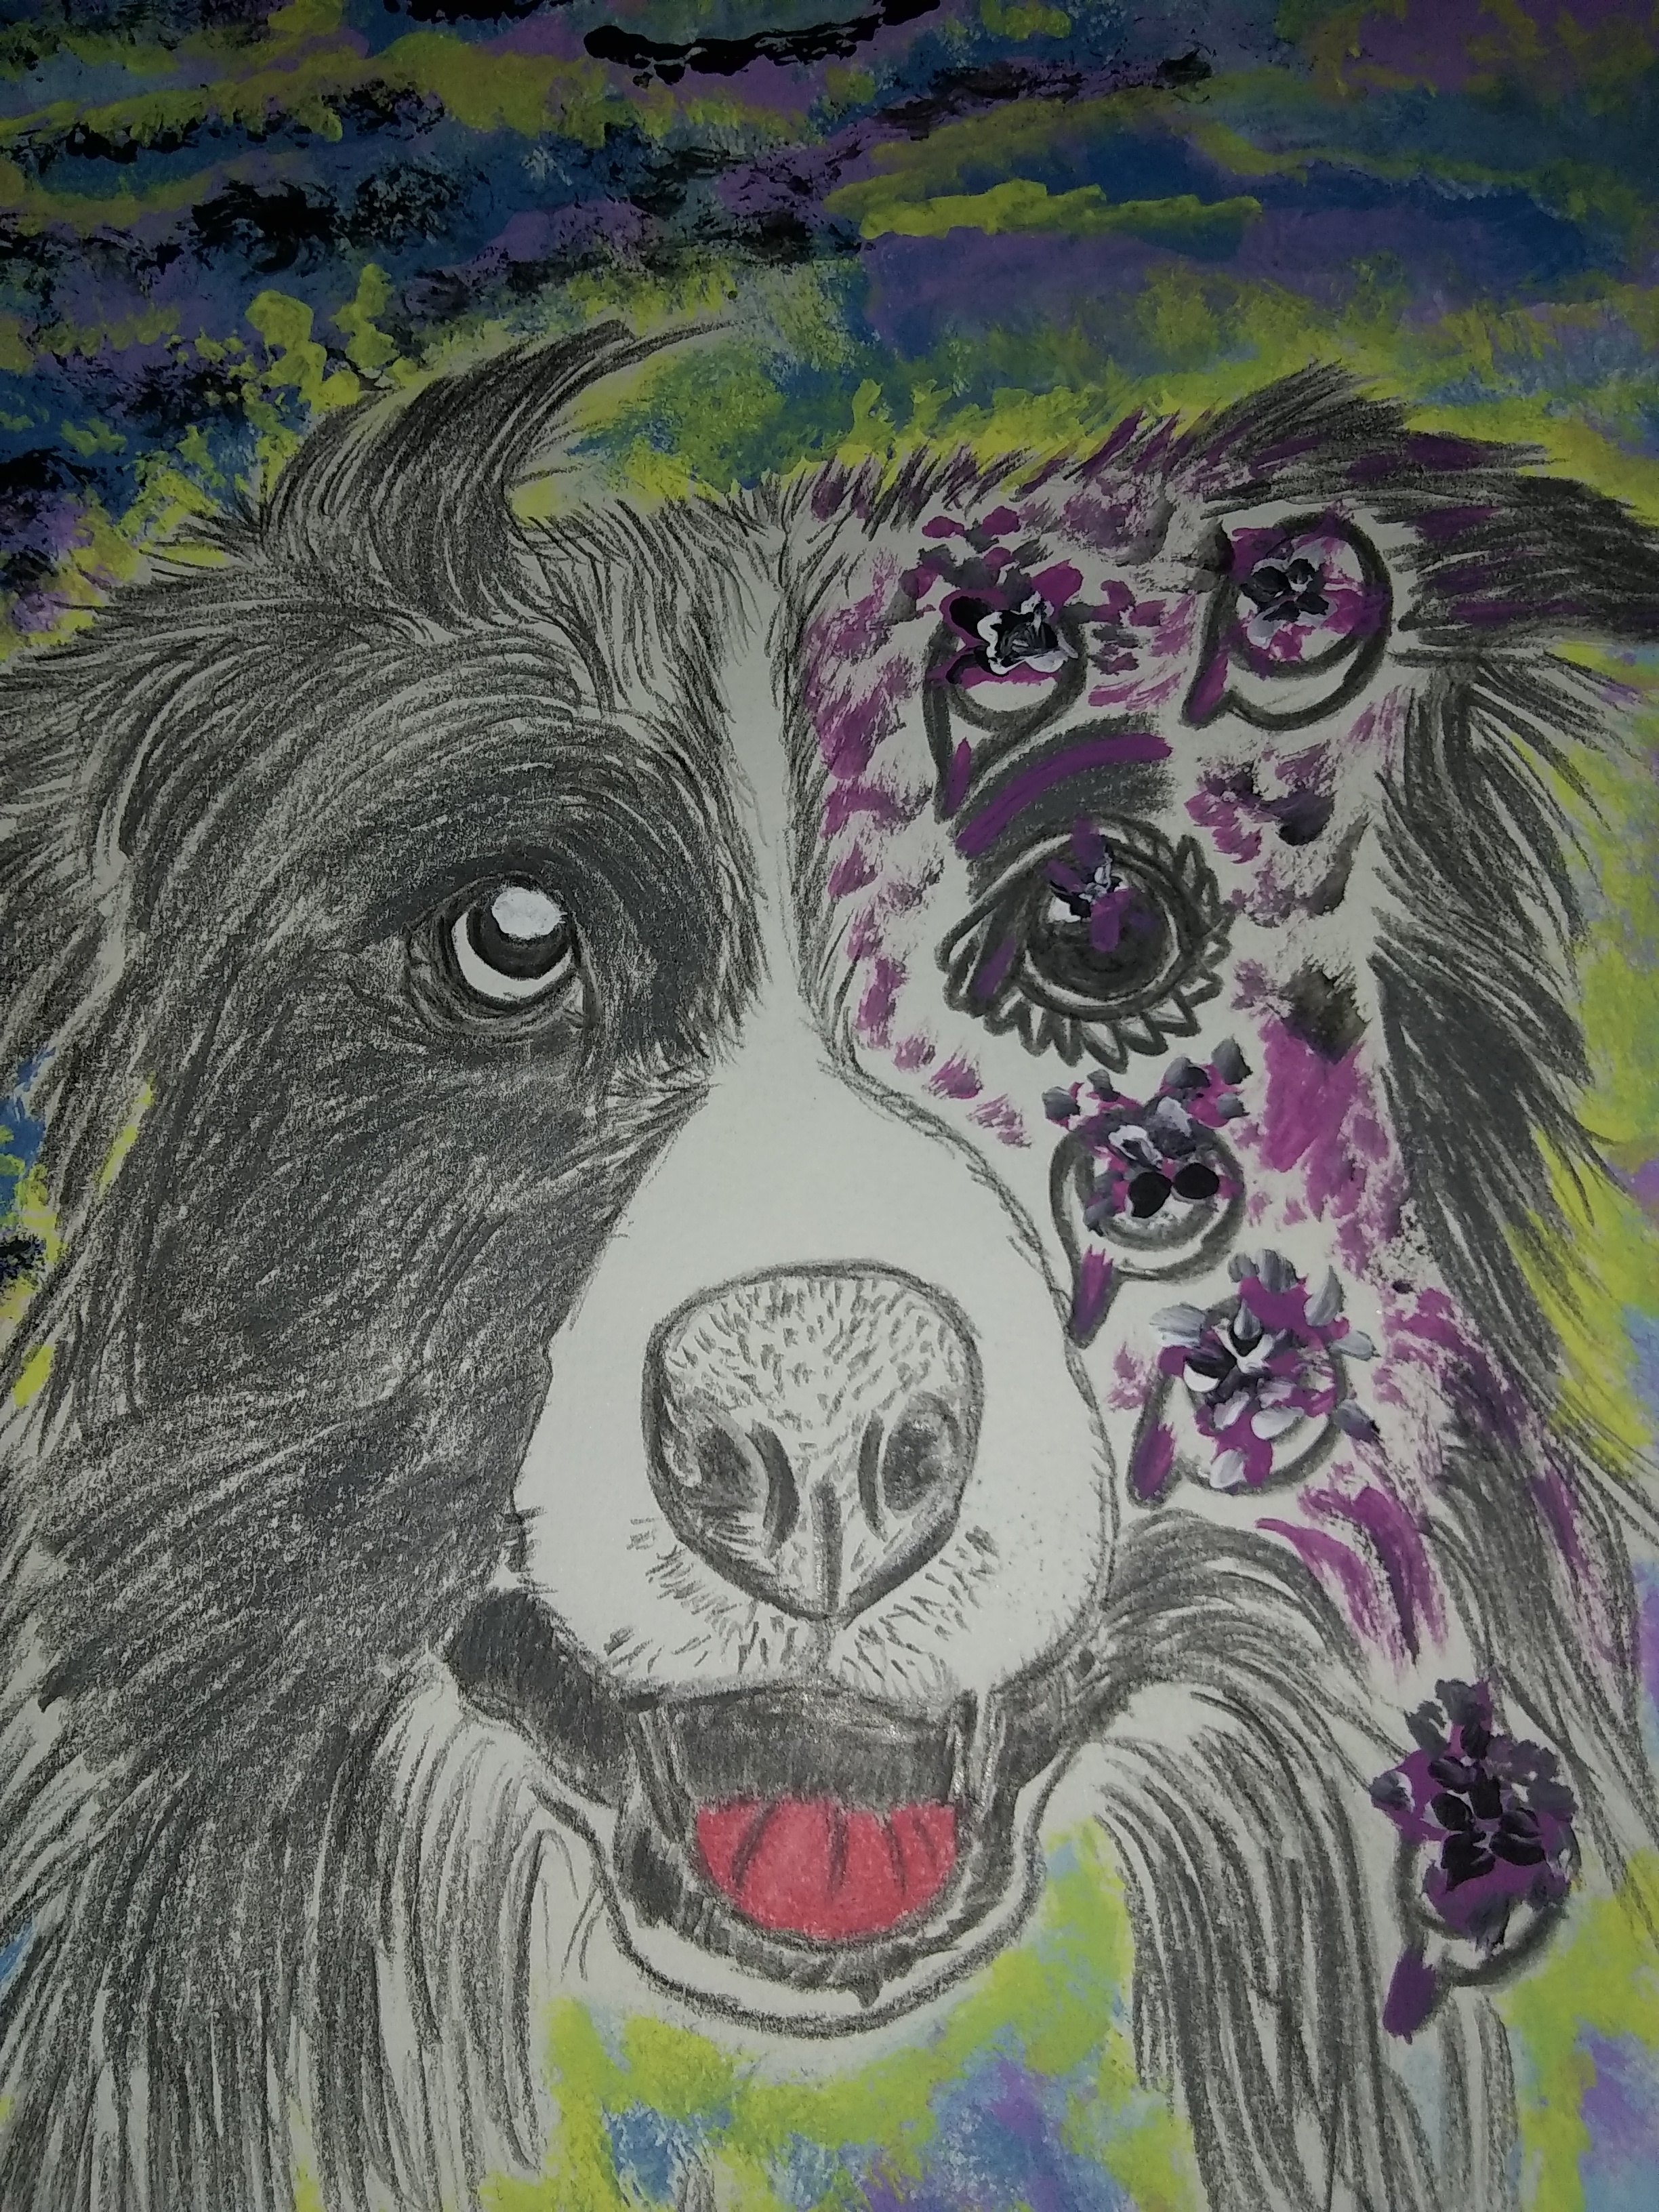 Puppy, drawing, eyes, pencil, dogs, animals, flowers, fantasy art